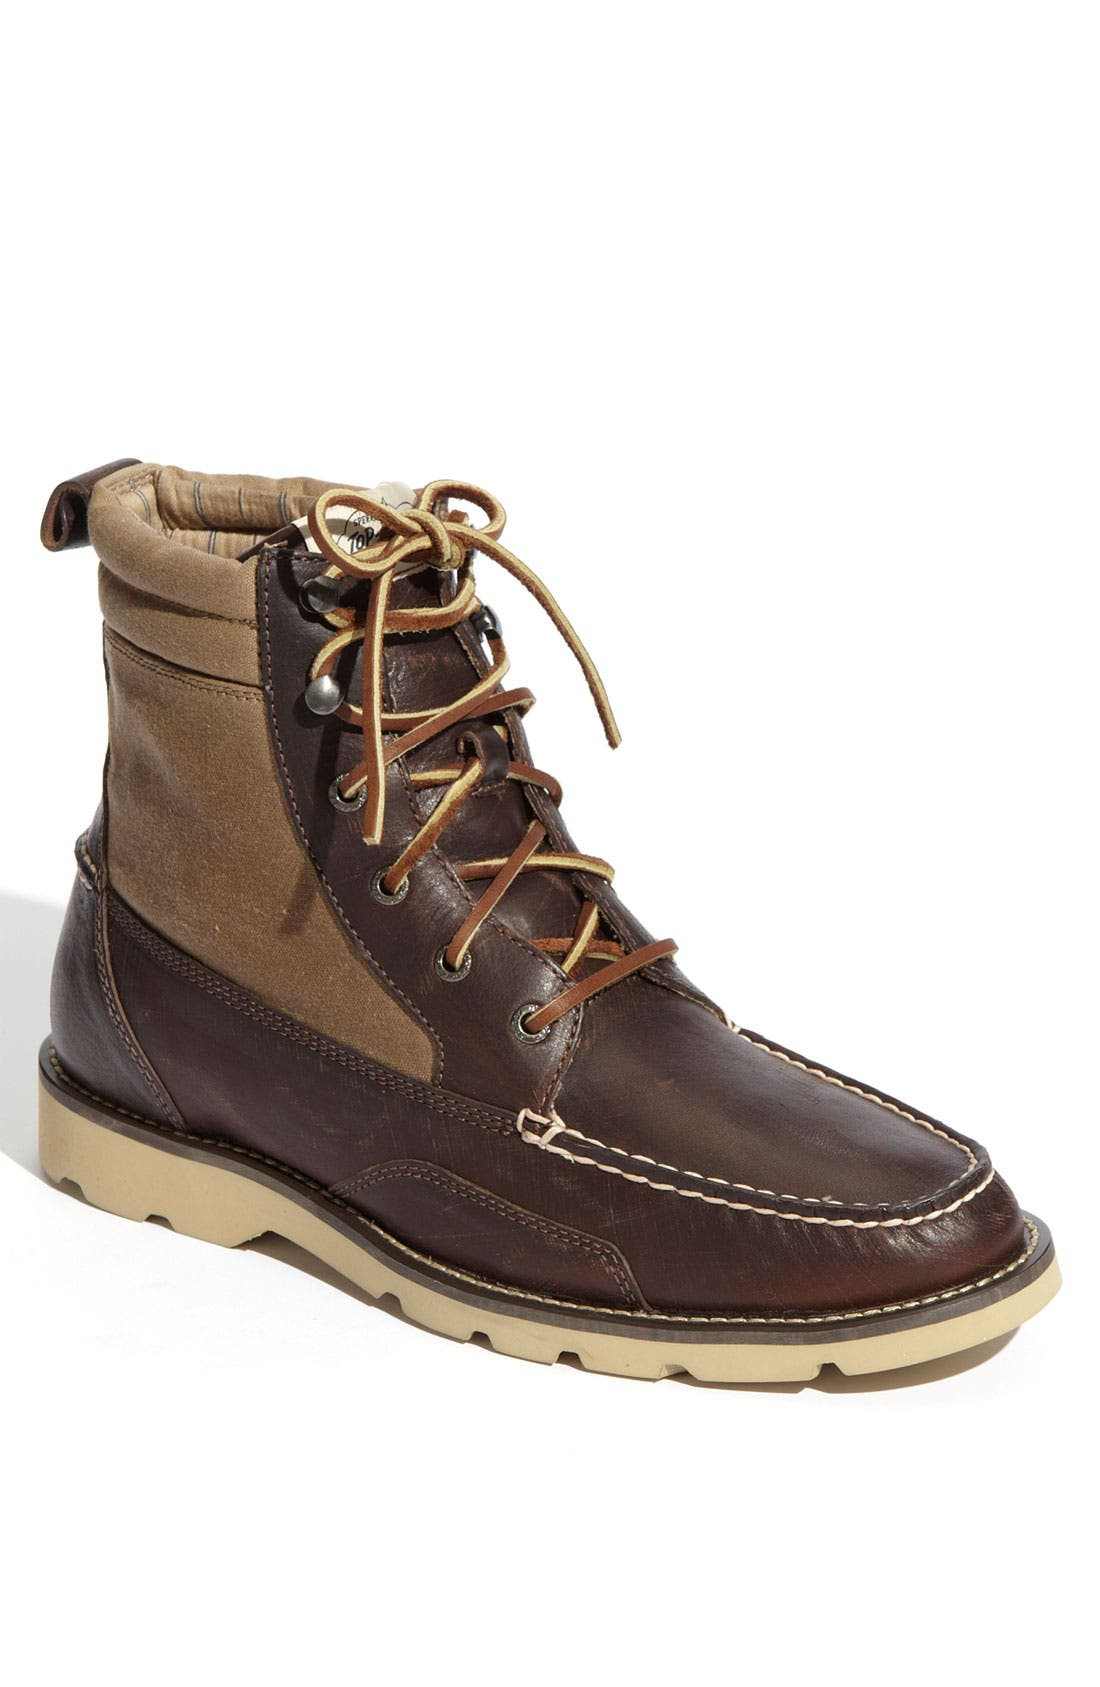 Main Image - Sperry Top-Sider® 'Shipyard Rigger' Boot